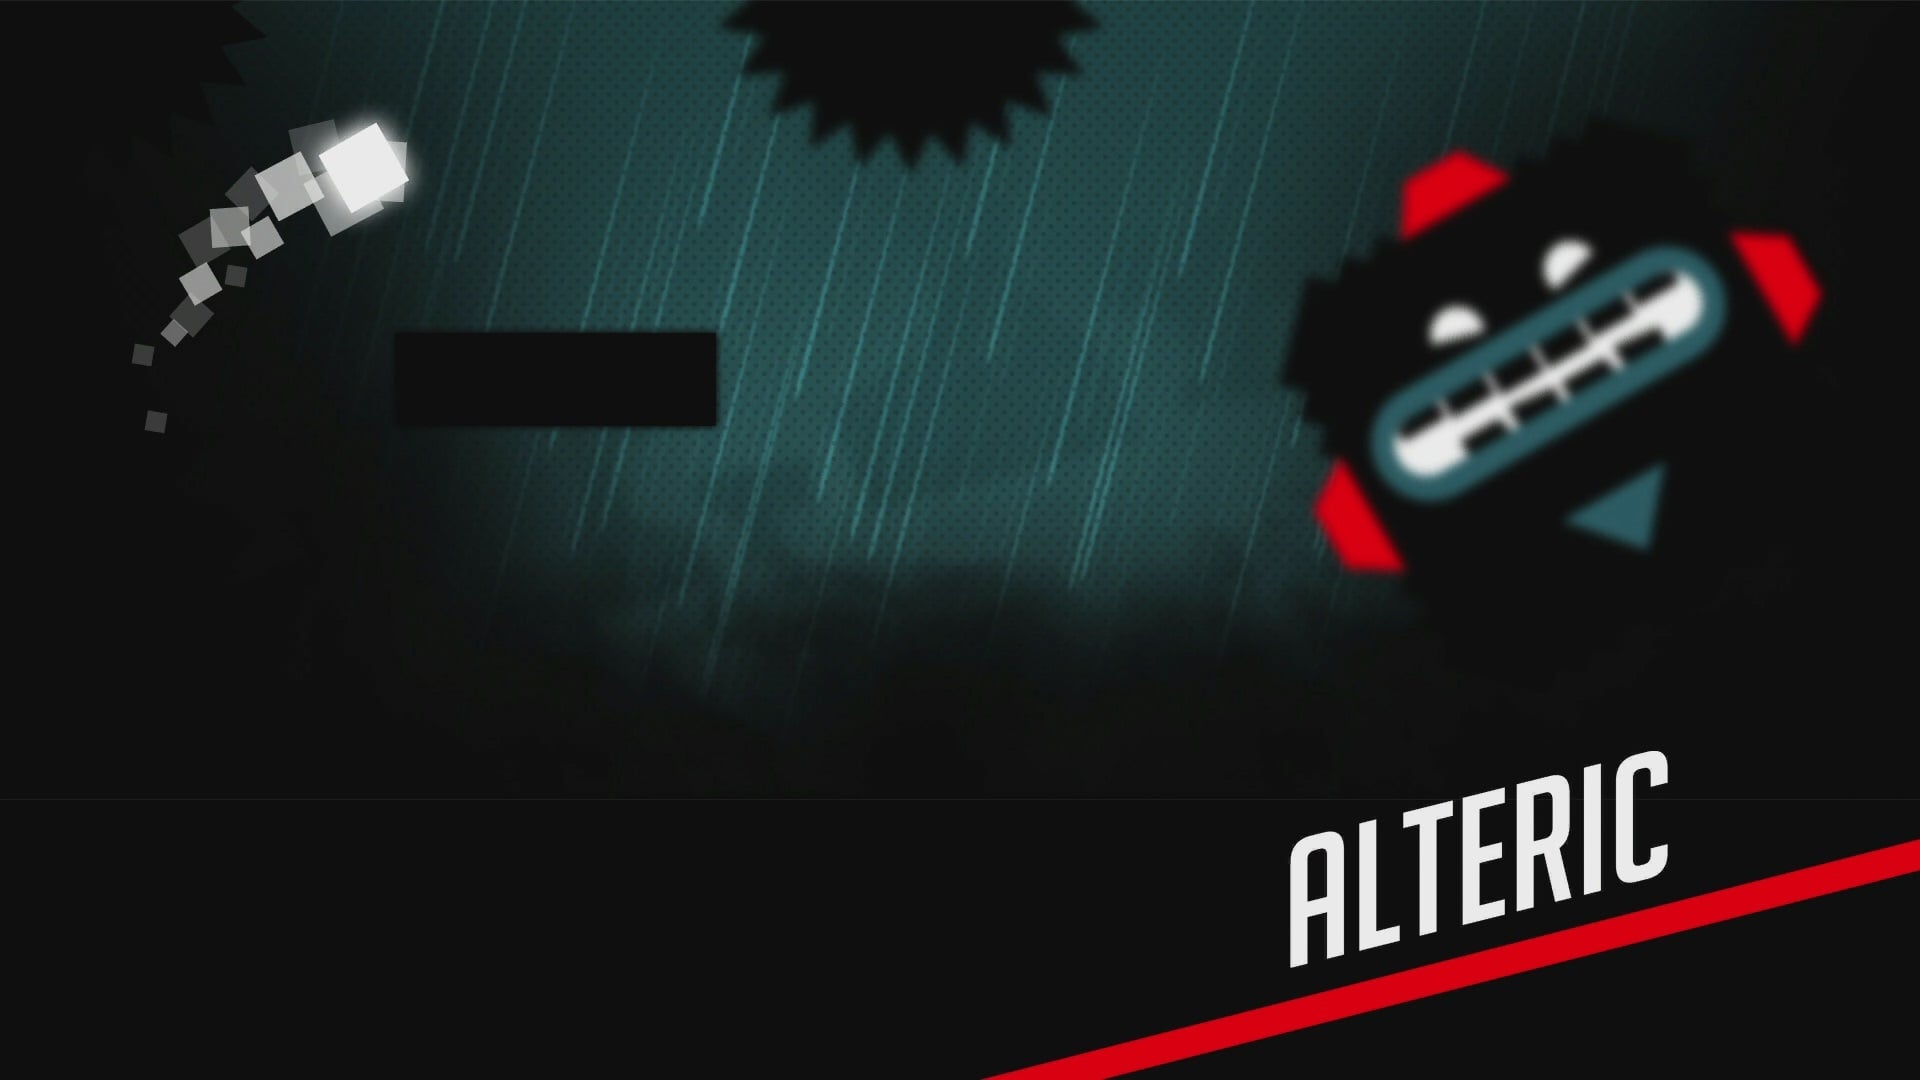 Alteric (PS4, PS Vita) Review